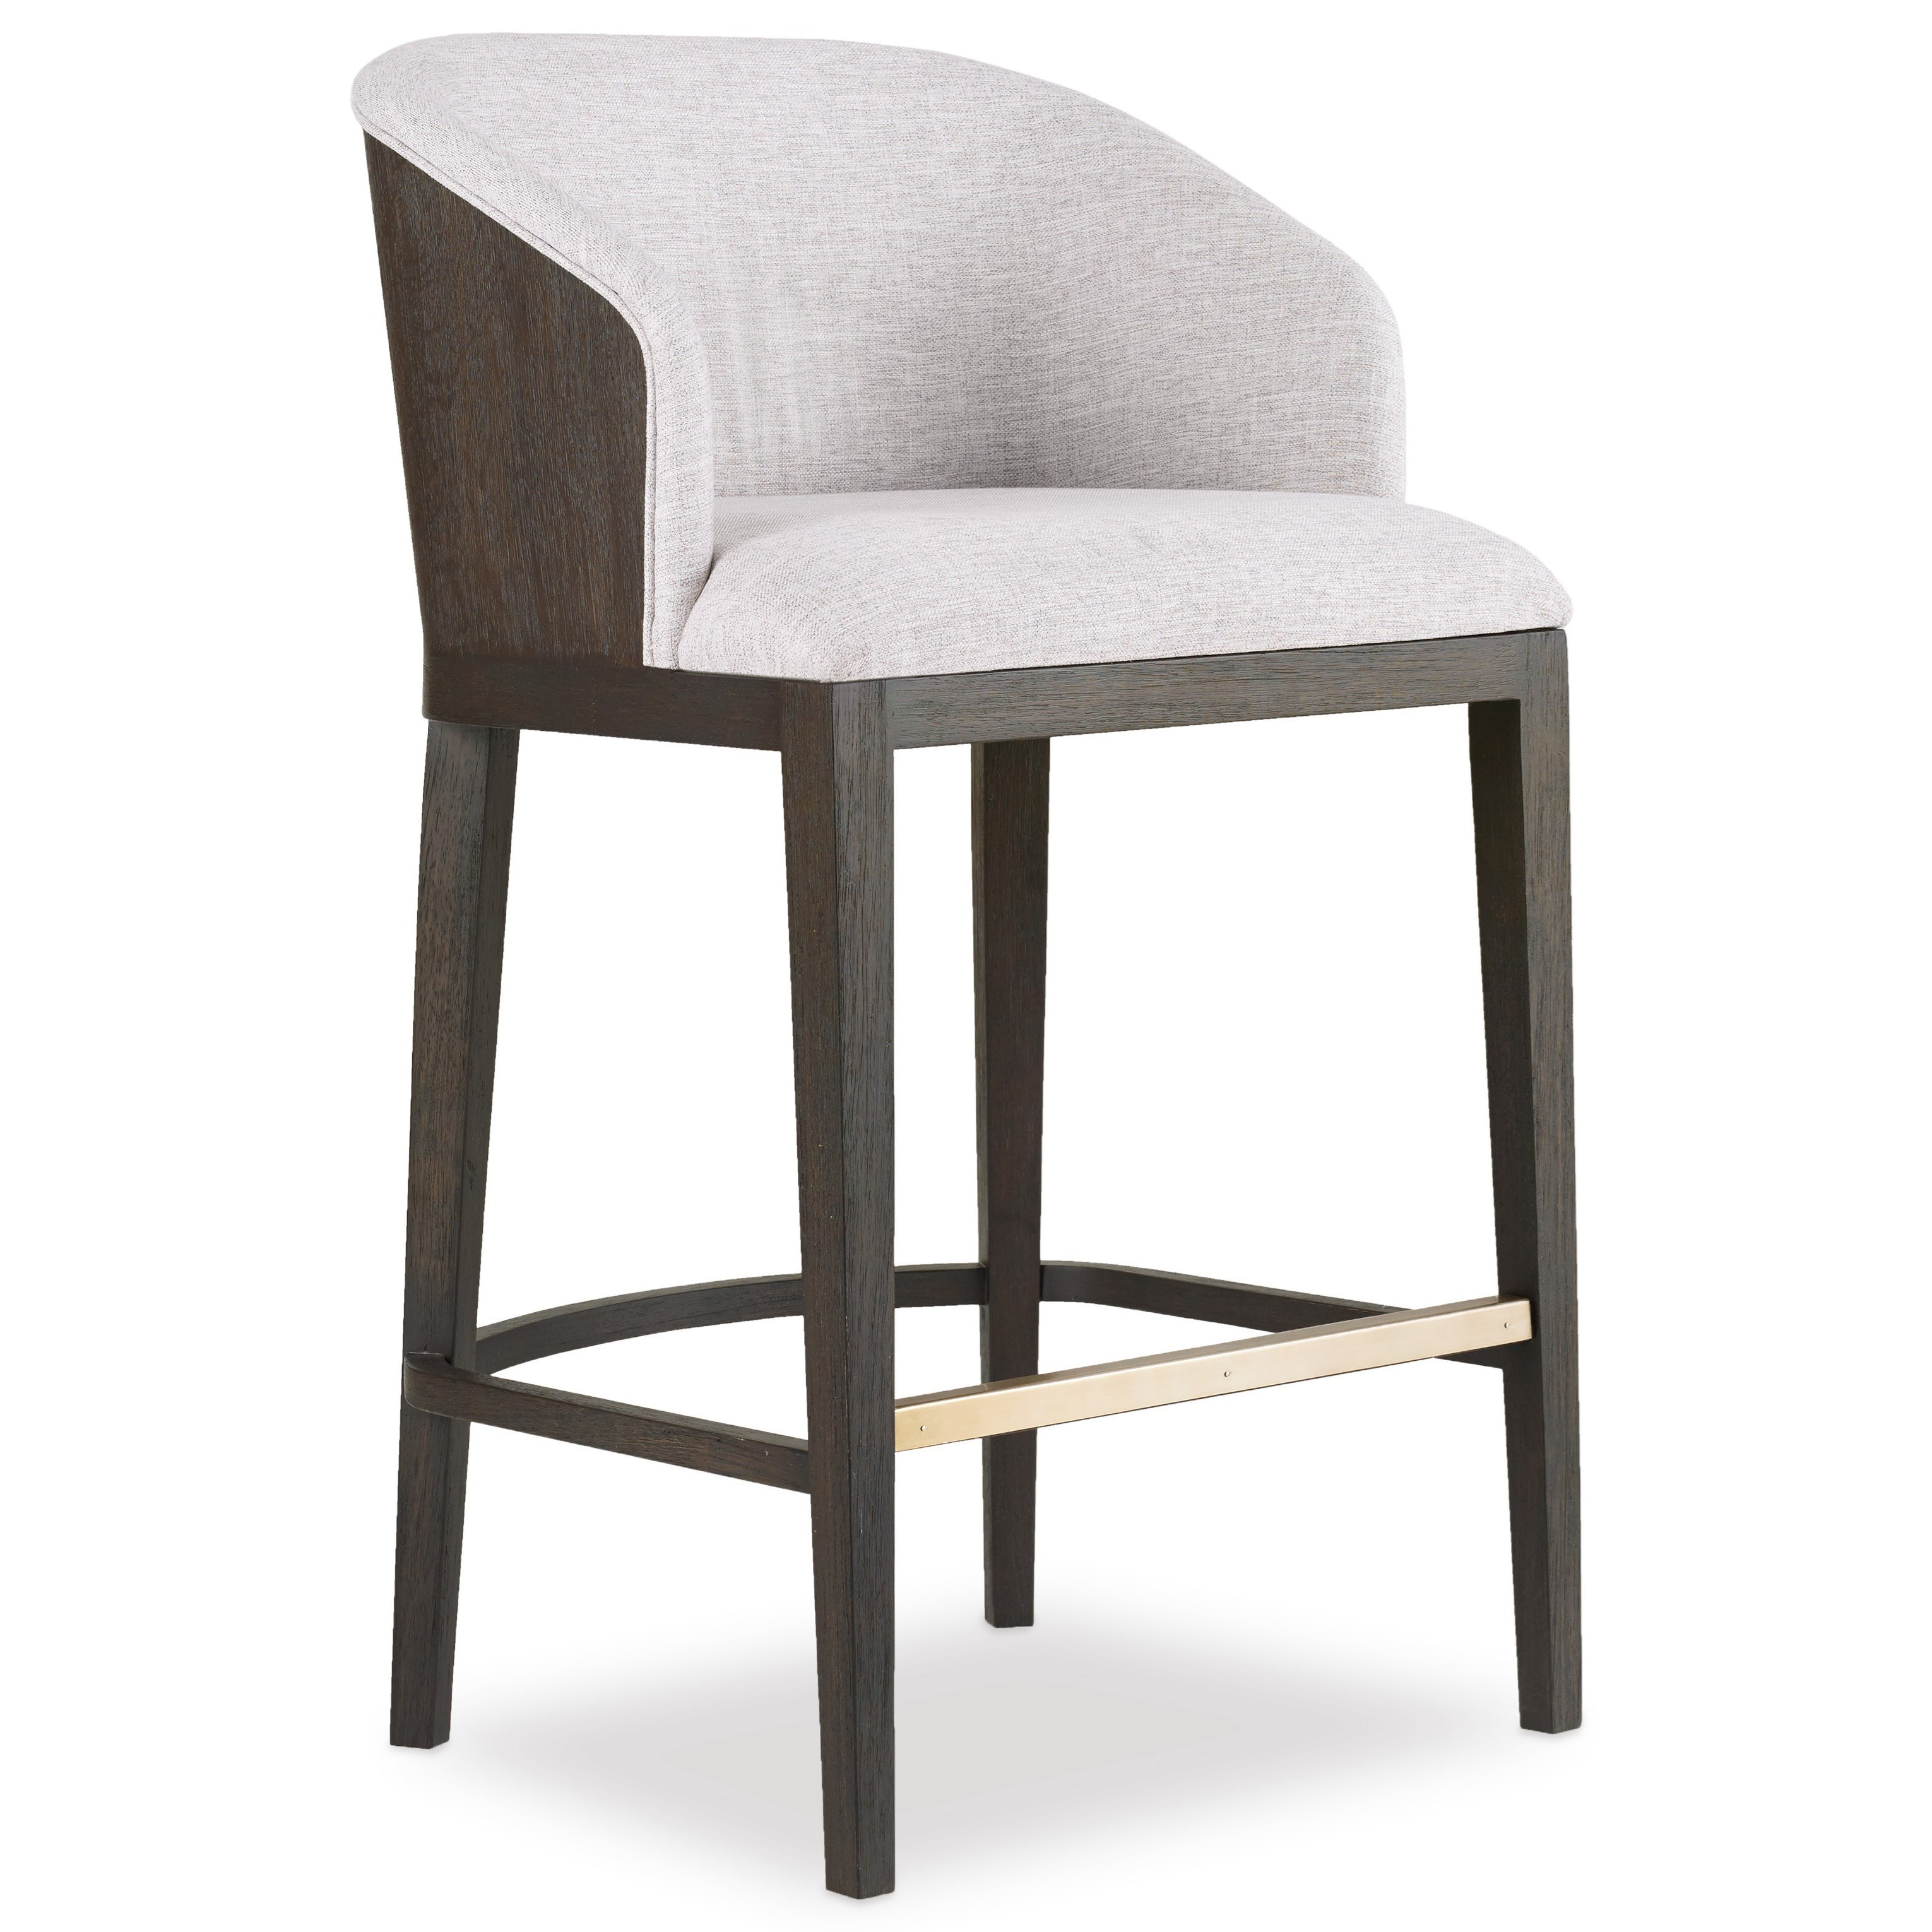 Hooker Furniture Curata Upholstered Bar Stool Knight